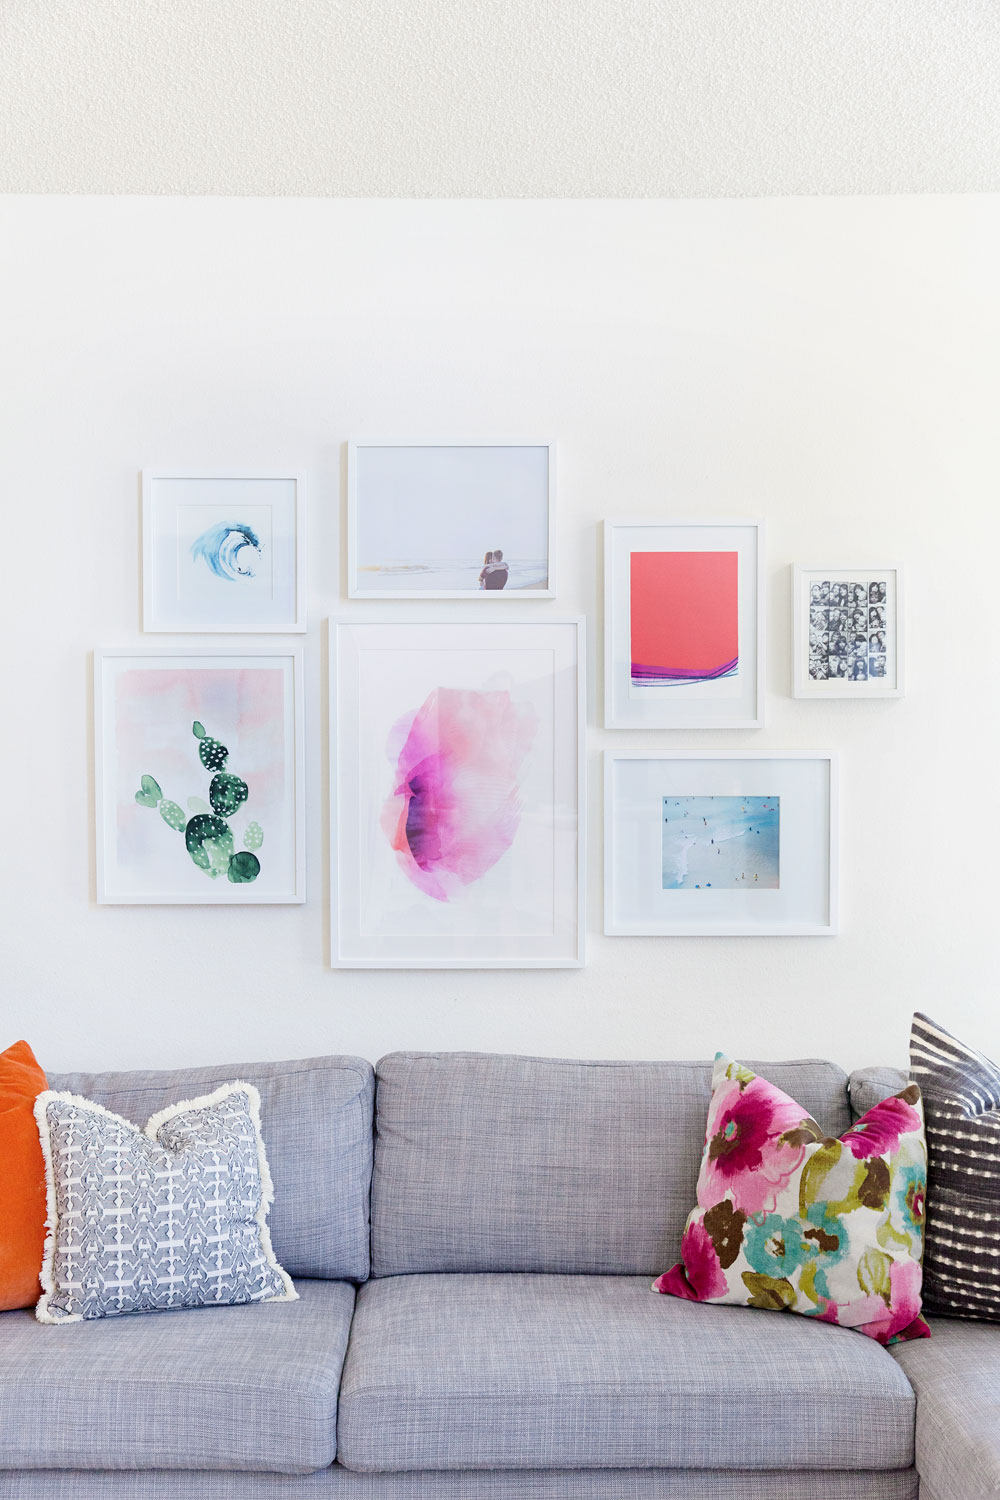 Gallery-wall-ideas-and-tips